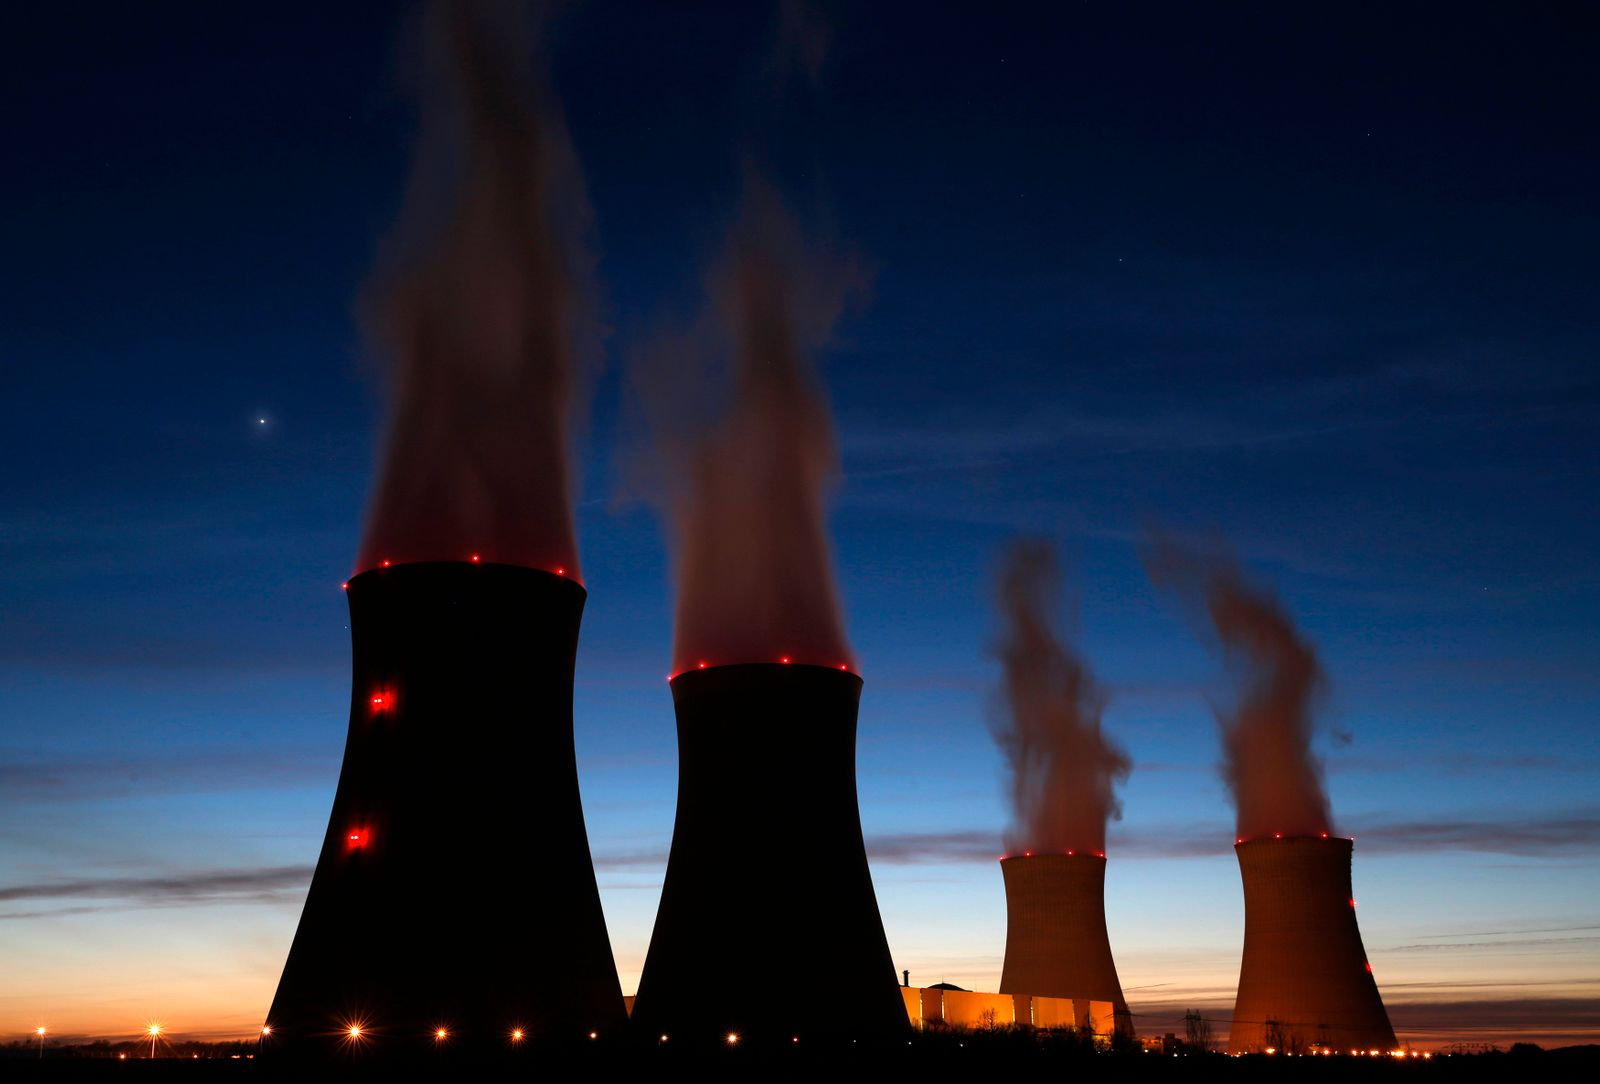 Steam rises at night from the cooling towers of the Dampierre nuclear power plant